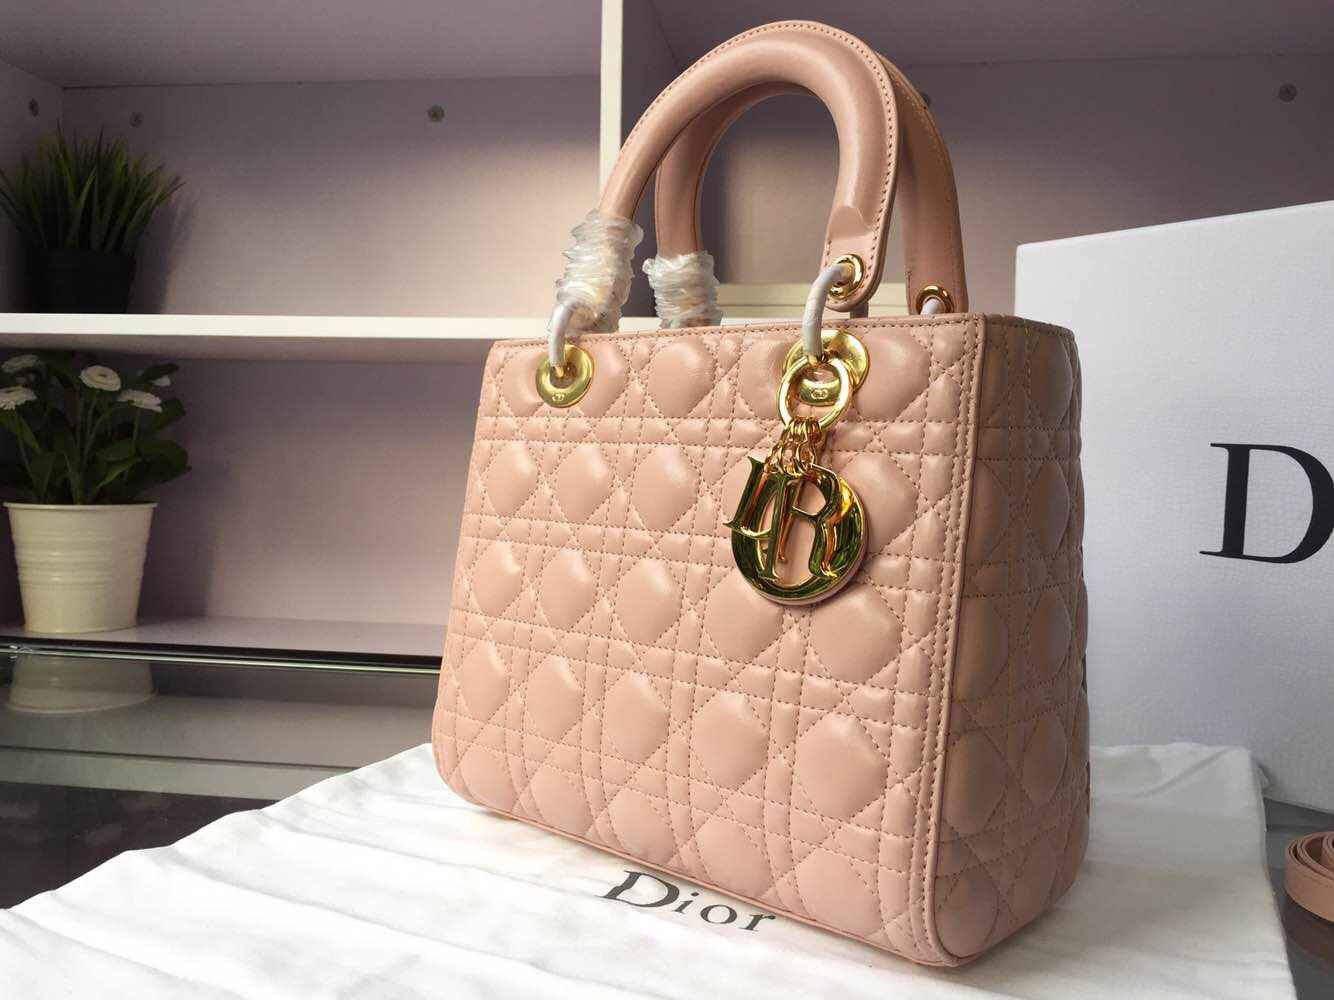 af469eb6cbf Christian Dior Lady with nude colour lambskin leather gold hardware,  adjustable & detachable shoulder